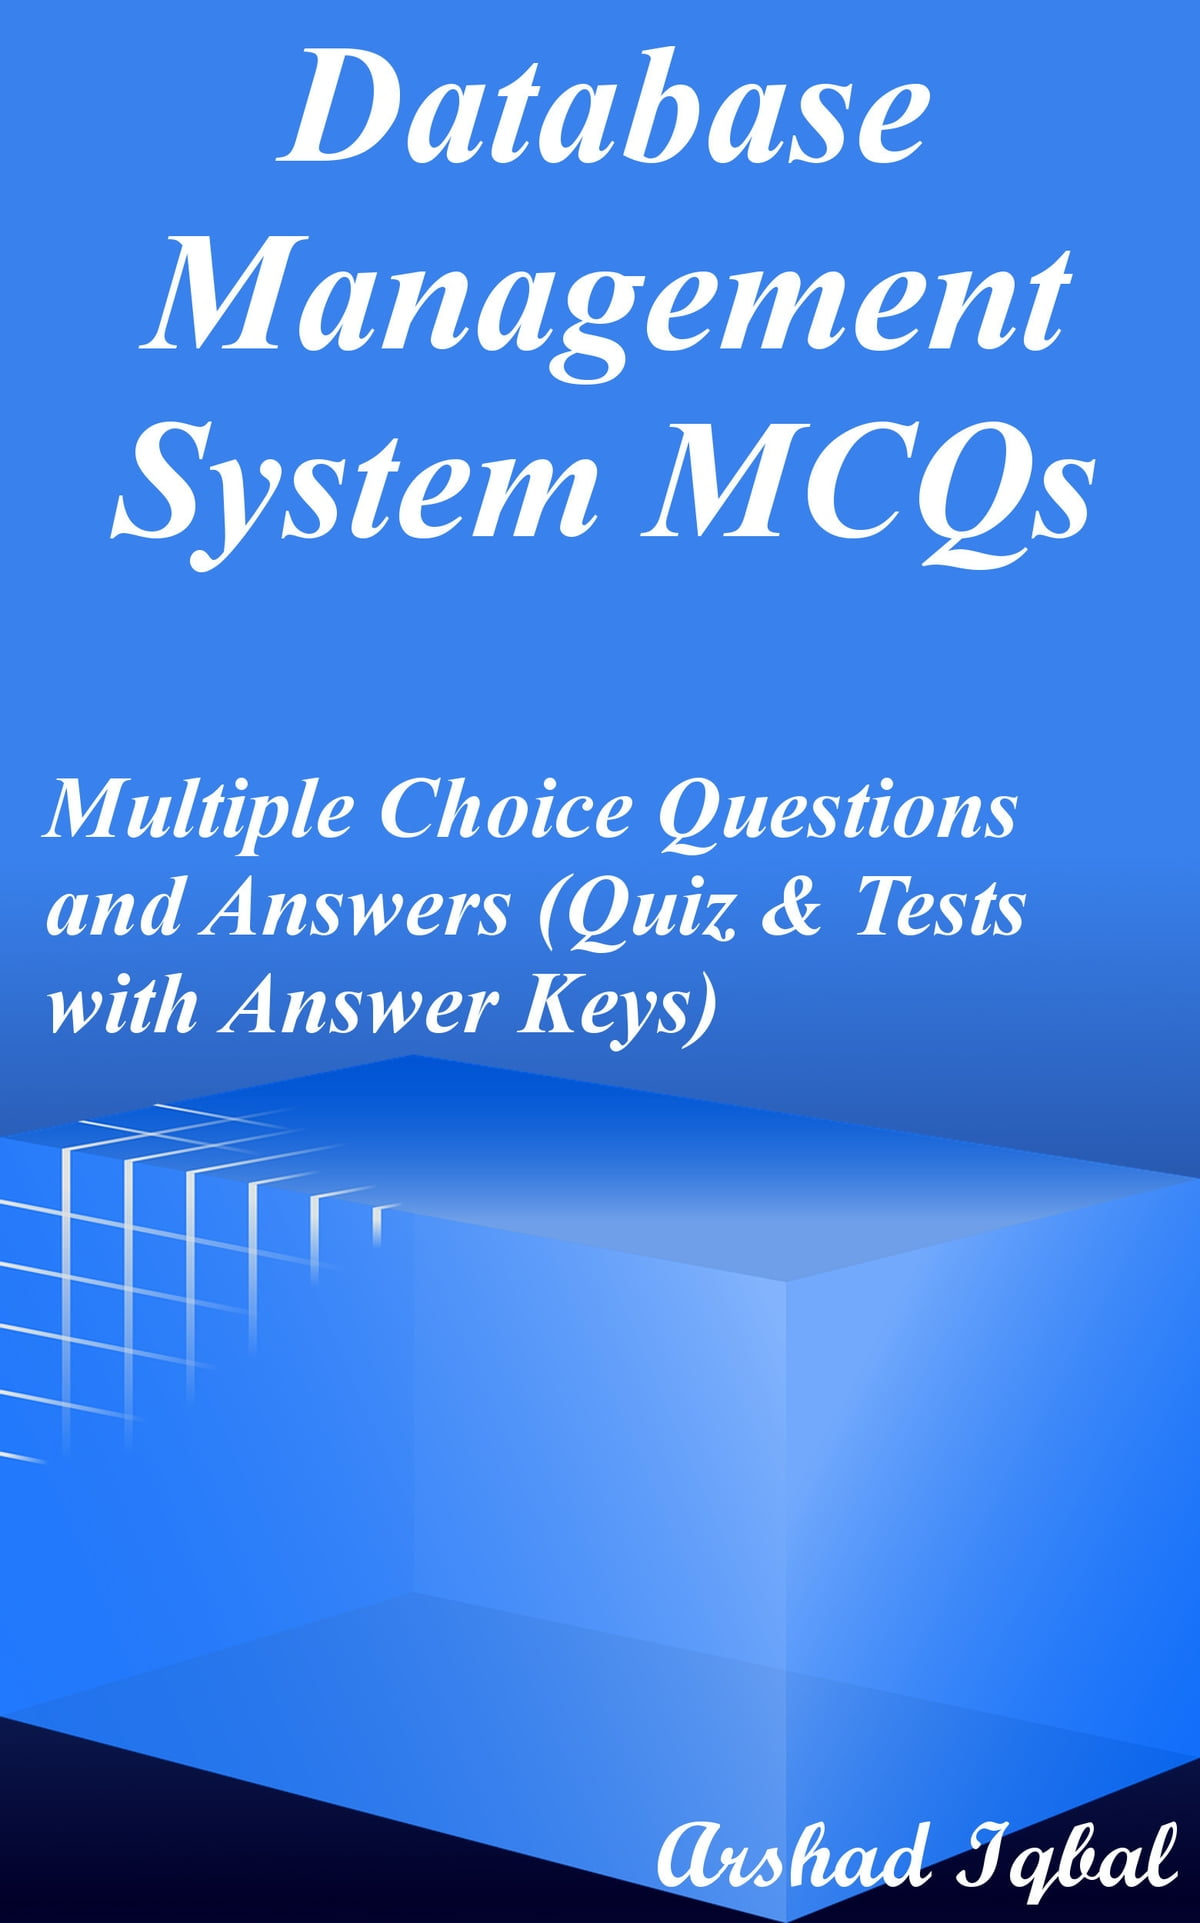 hight resolution of database management system mcqs multiple choice questions and answers quiz tests with answer keys ebook by arshad iqbal 9781310041945 rakuten kobo